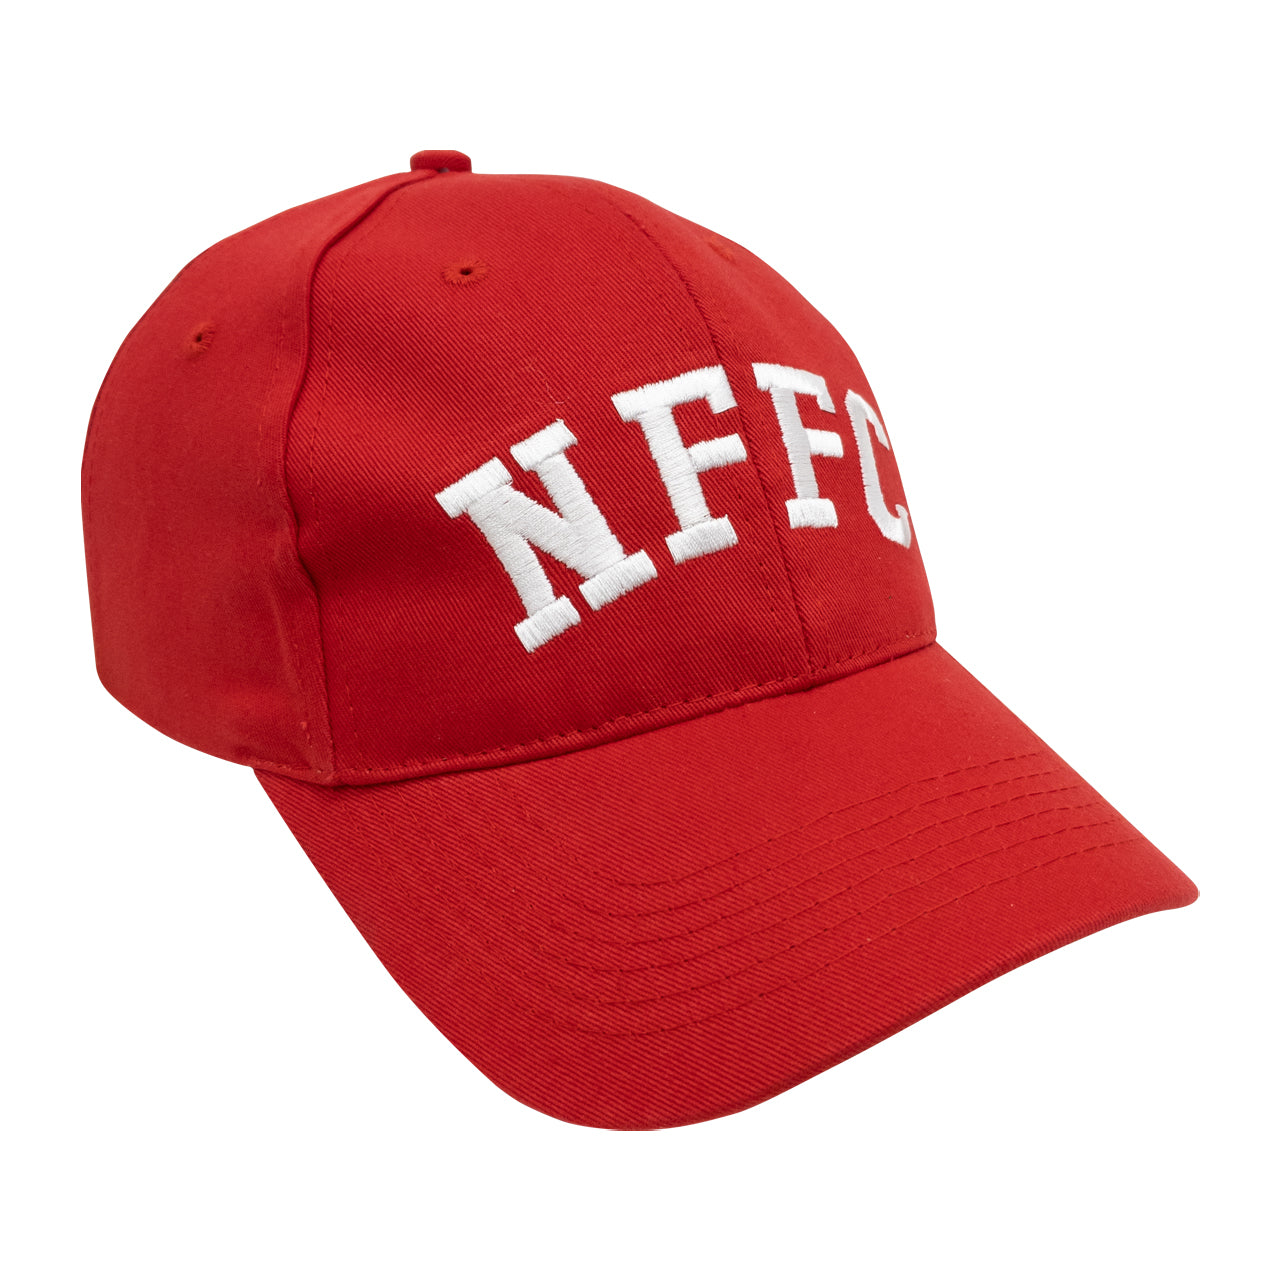 NFFC Red Adult Text Cap